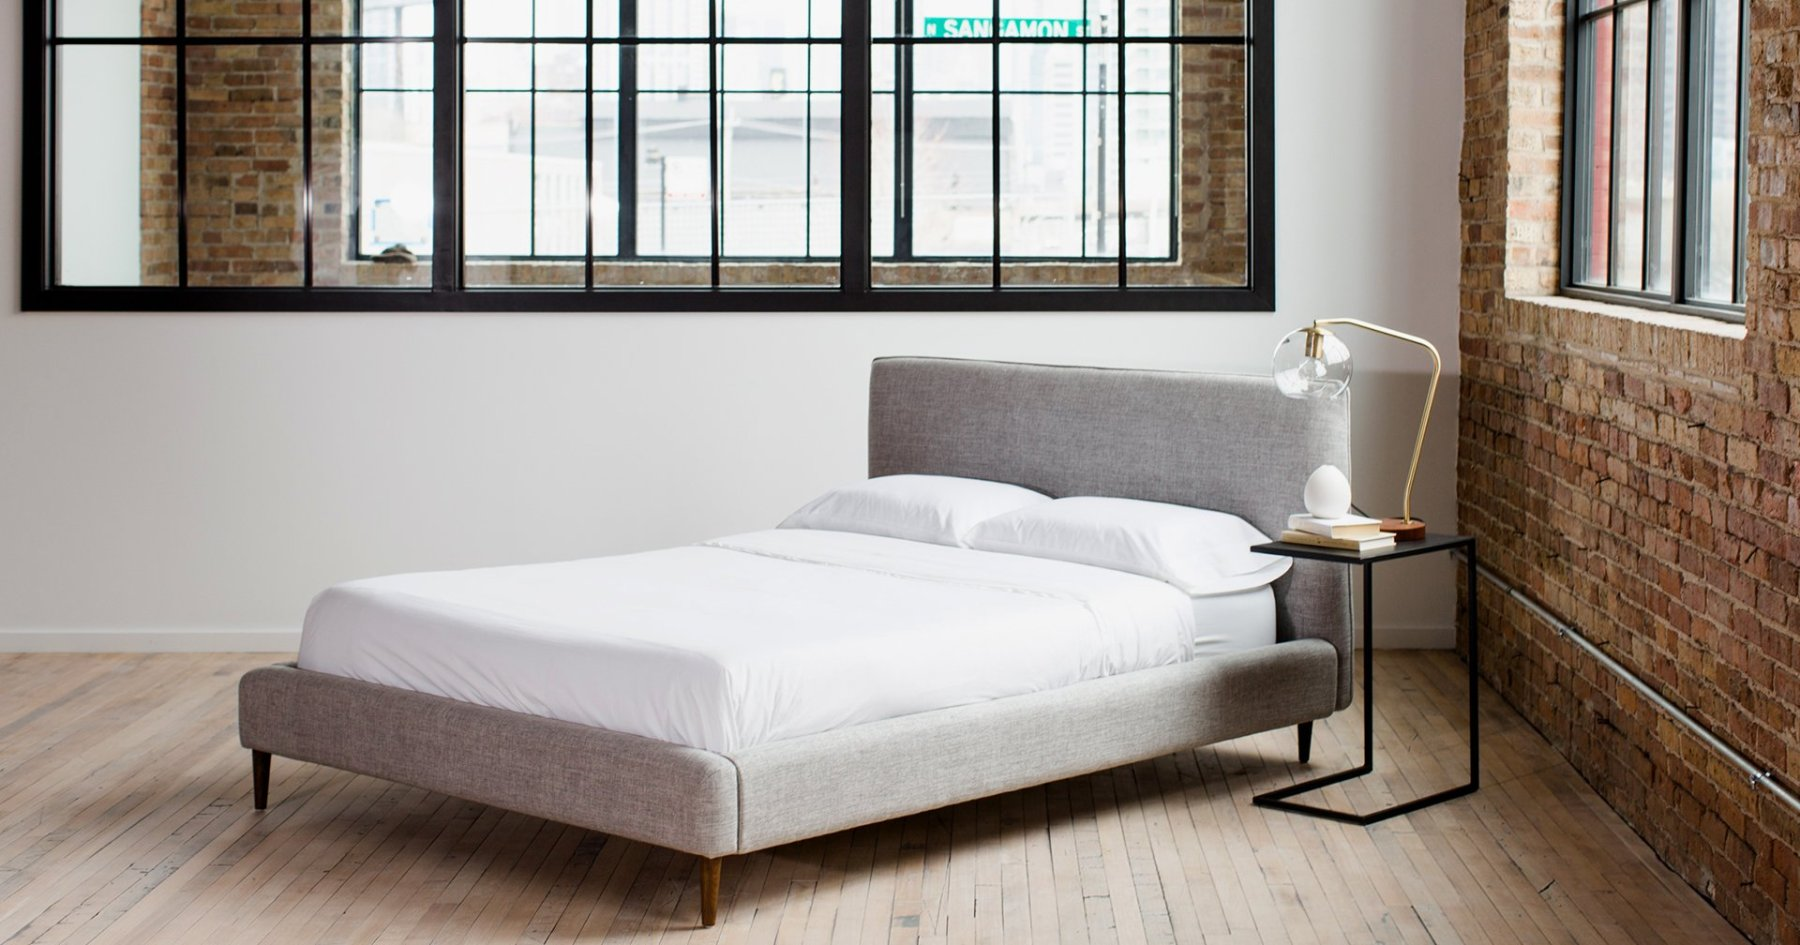 Interior Define Now Makes Beds and They're Handsome as Heck